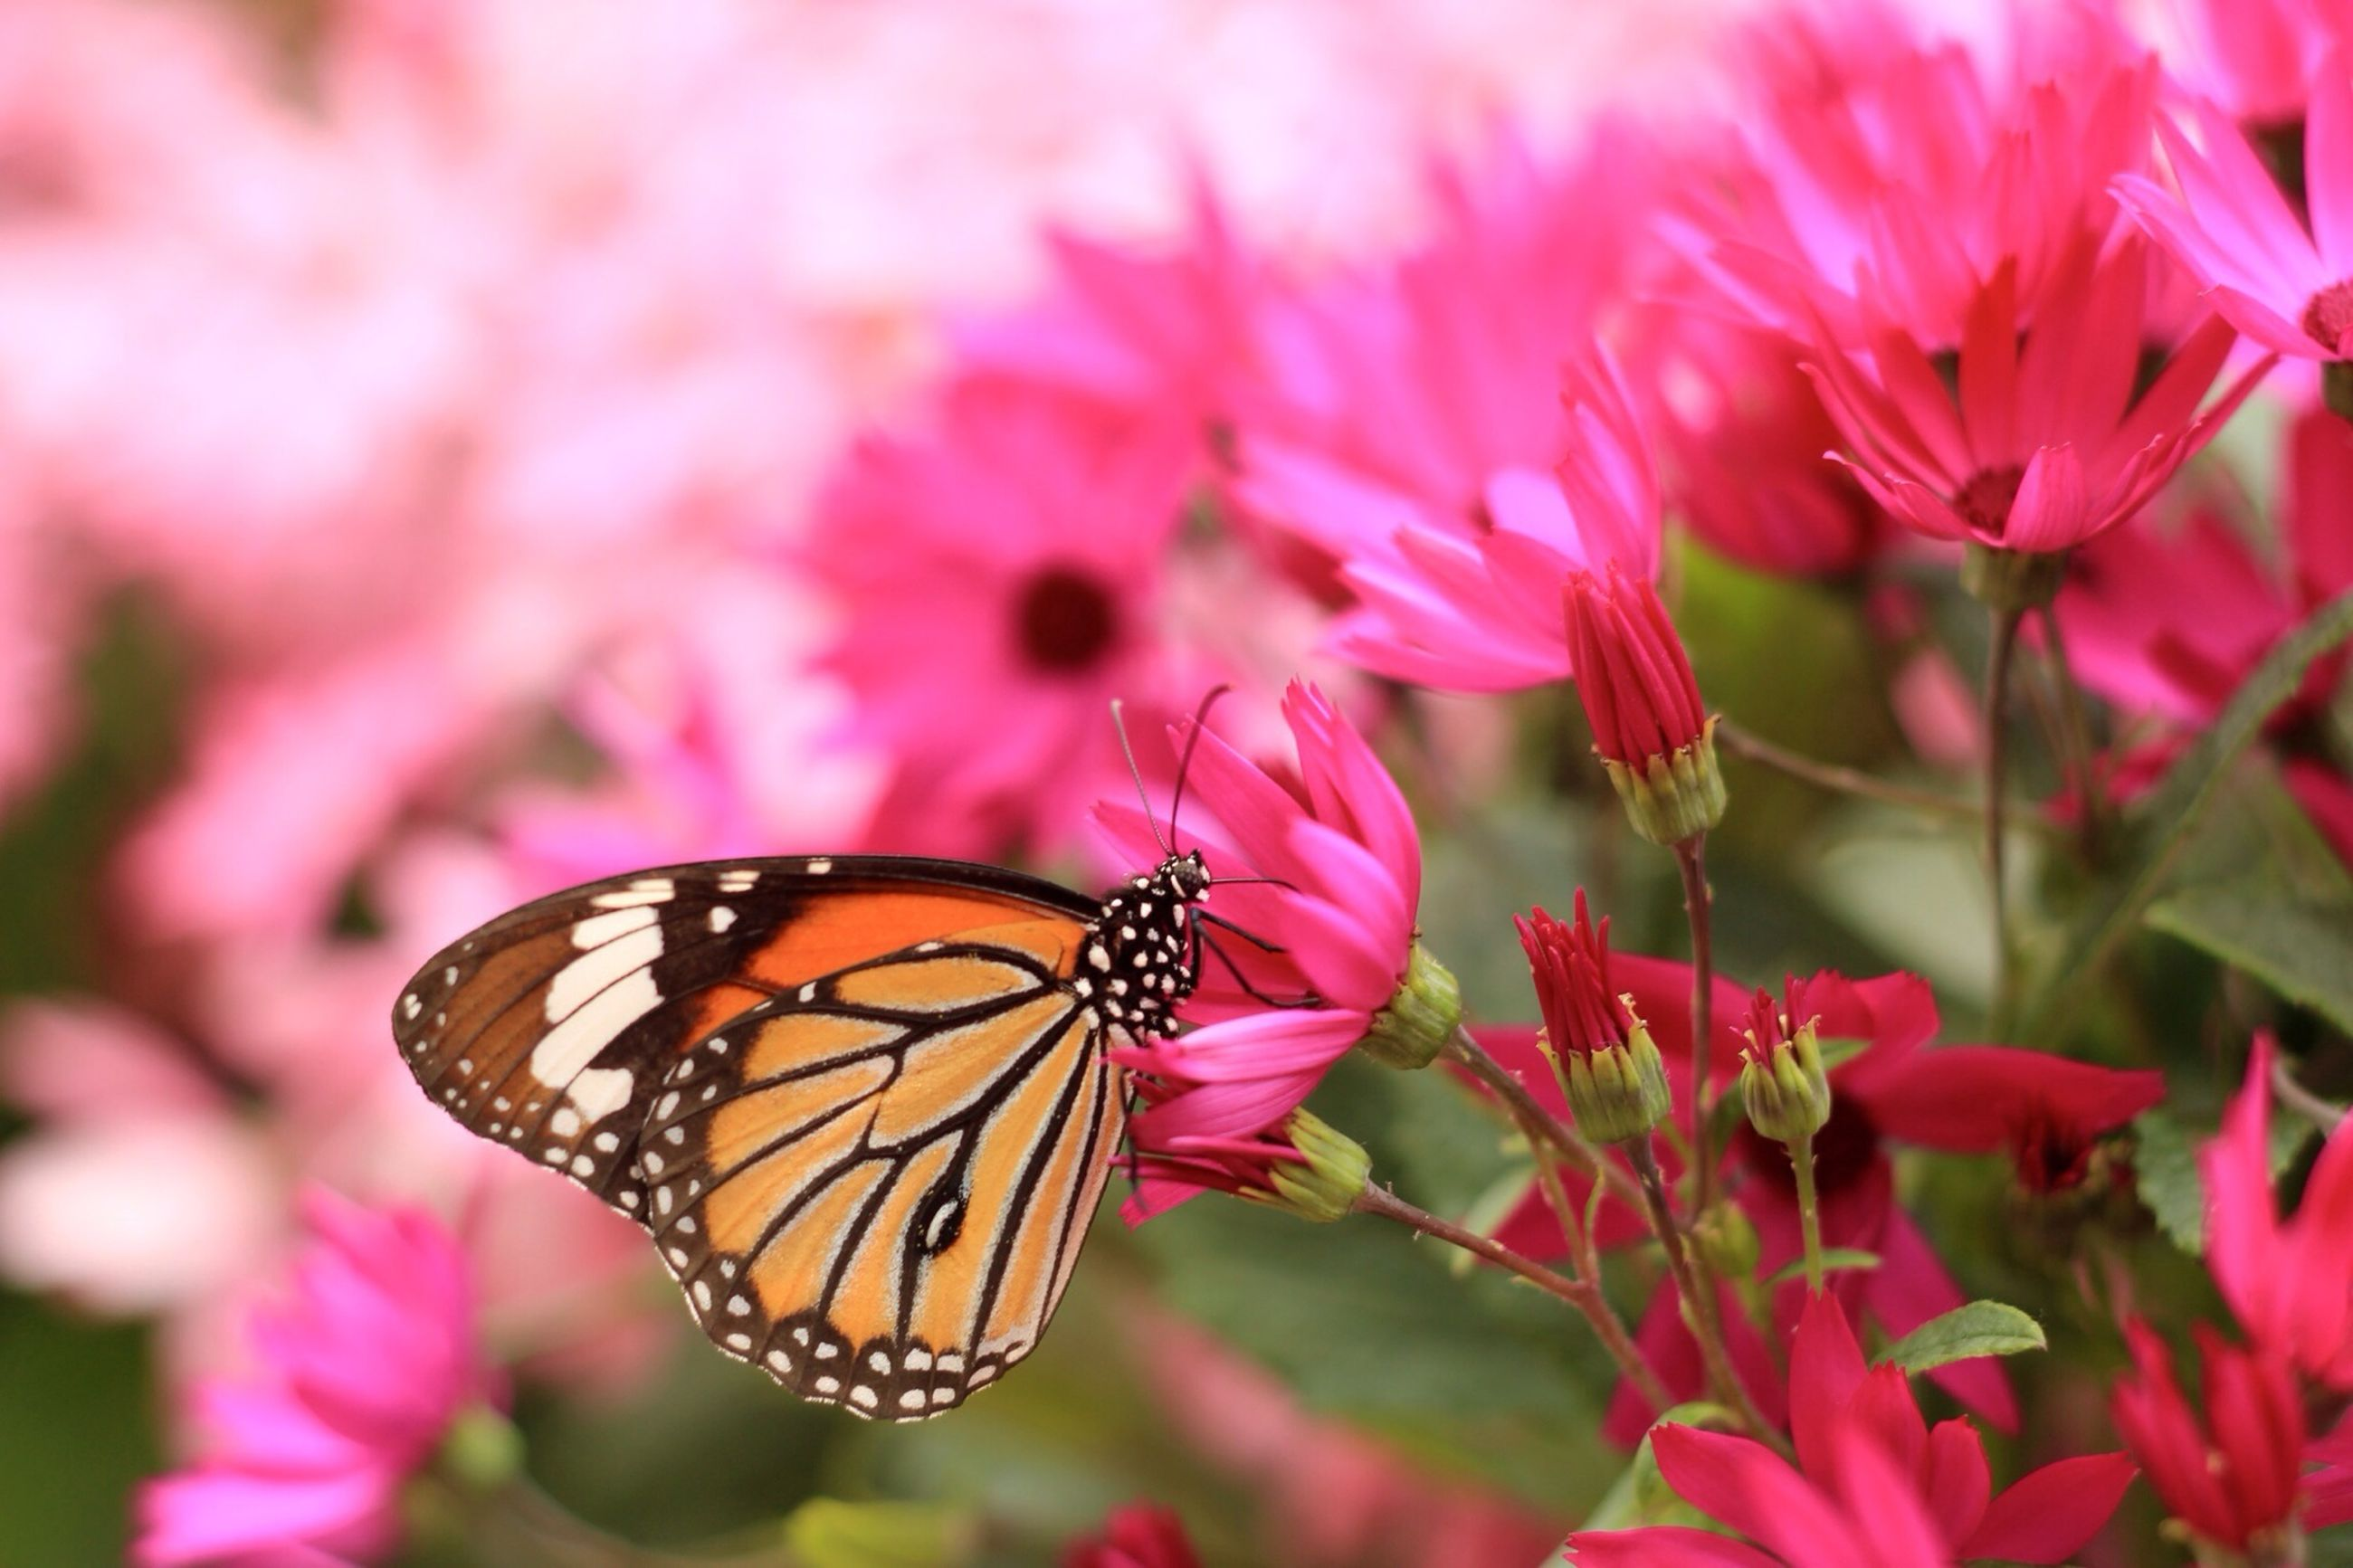 animals in the wild, insect, animal themes, wildlife, one animal, flower, butterfly - insect, pollination, butterfly, pink color, fragility, beauty in nature, petal, close-up, focus on foreground, freshness, nature, perching, symbiotic relationship, growth